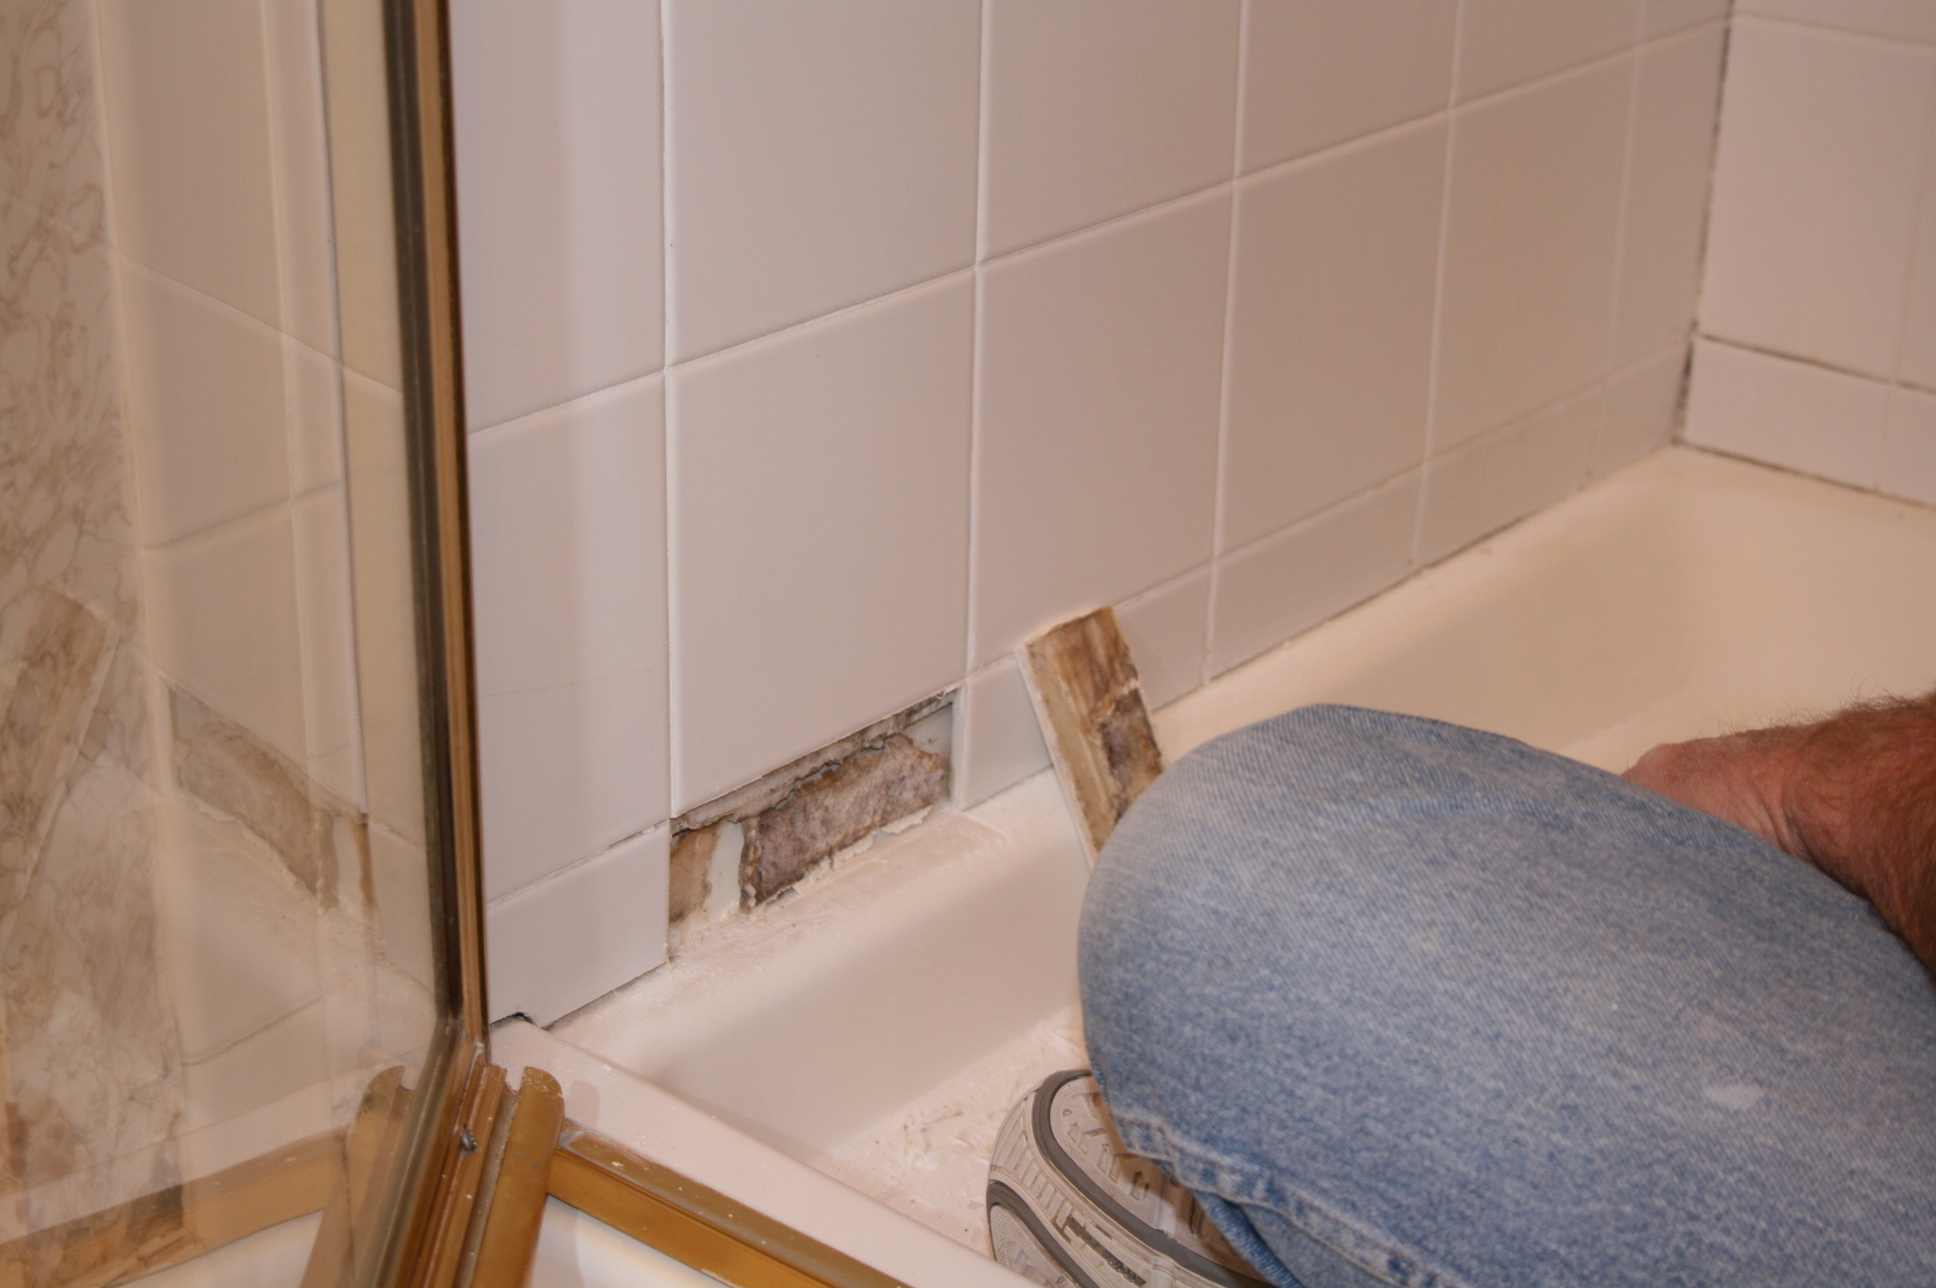 Bathroom Cleaning Regrouting And Caulking